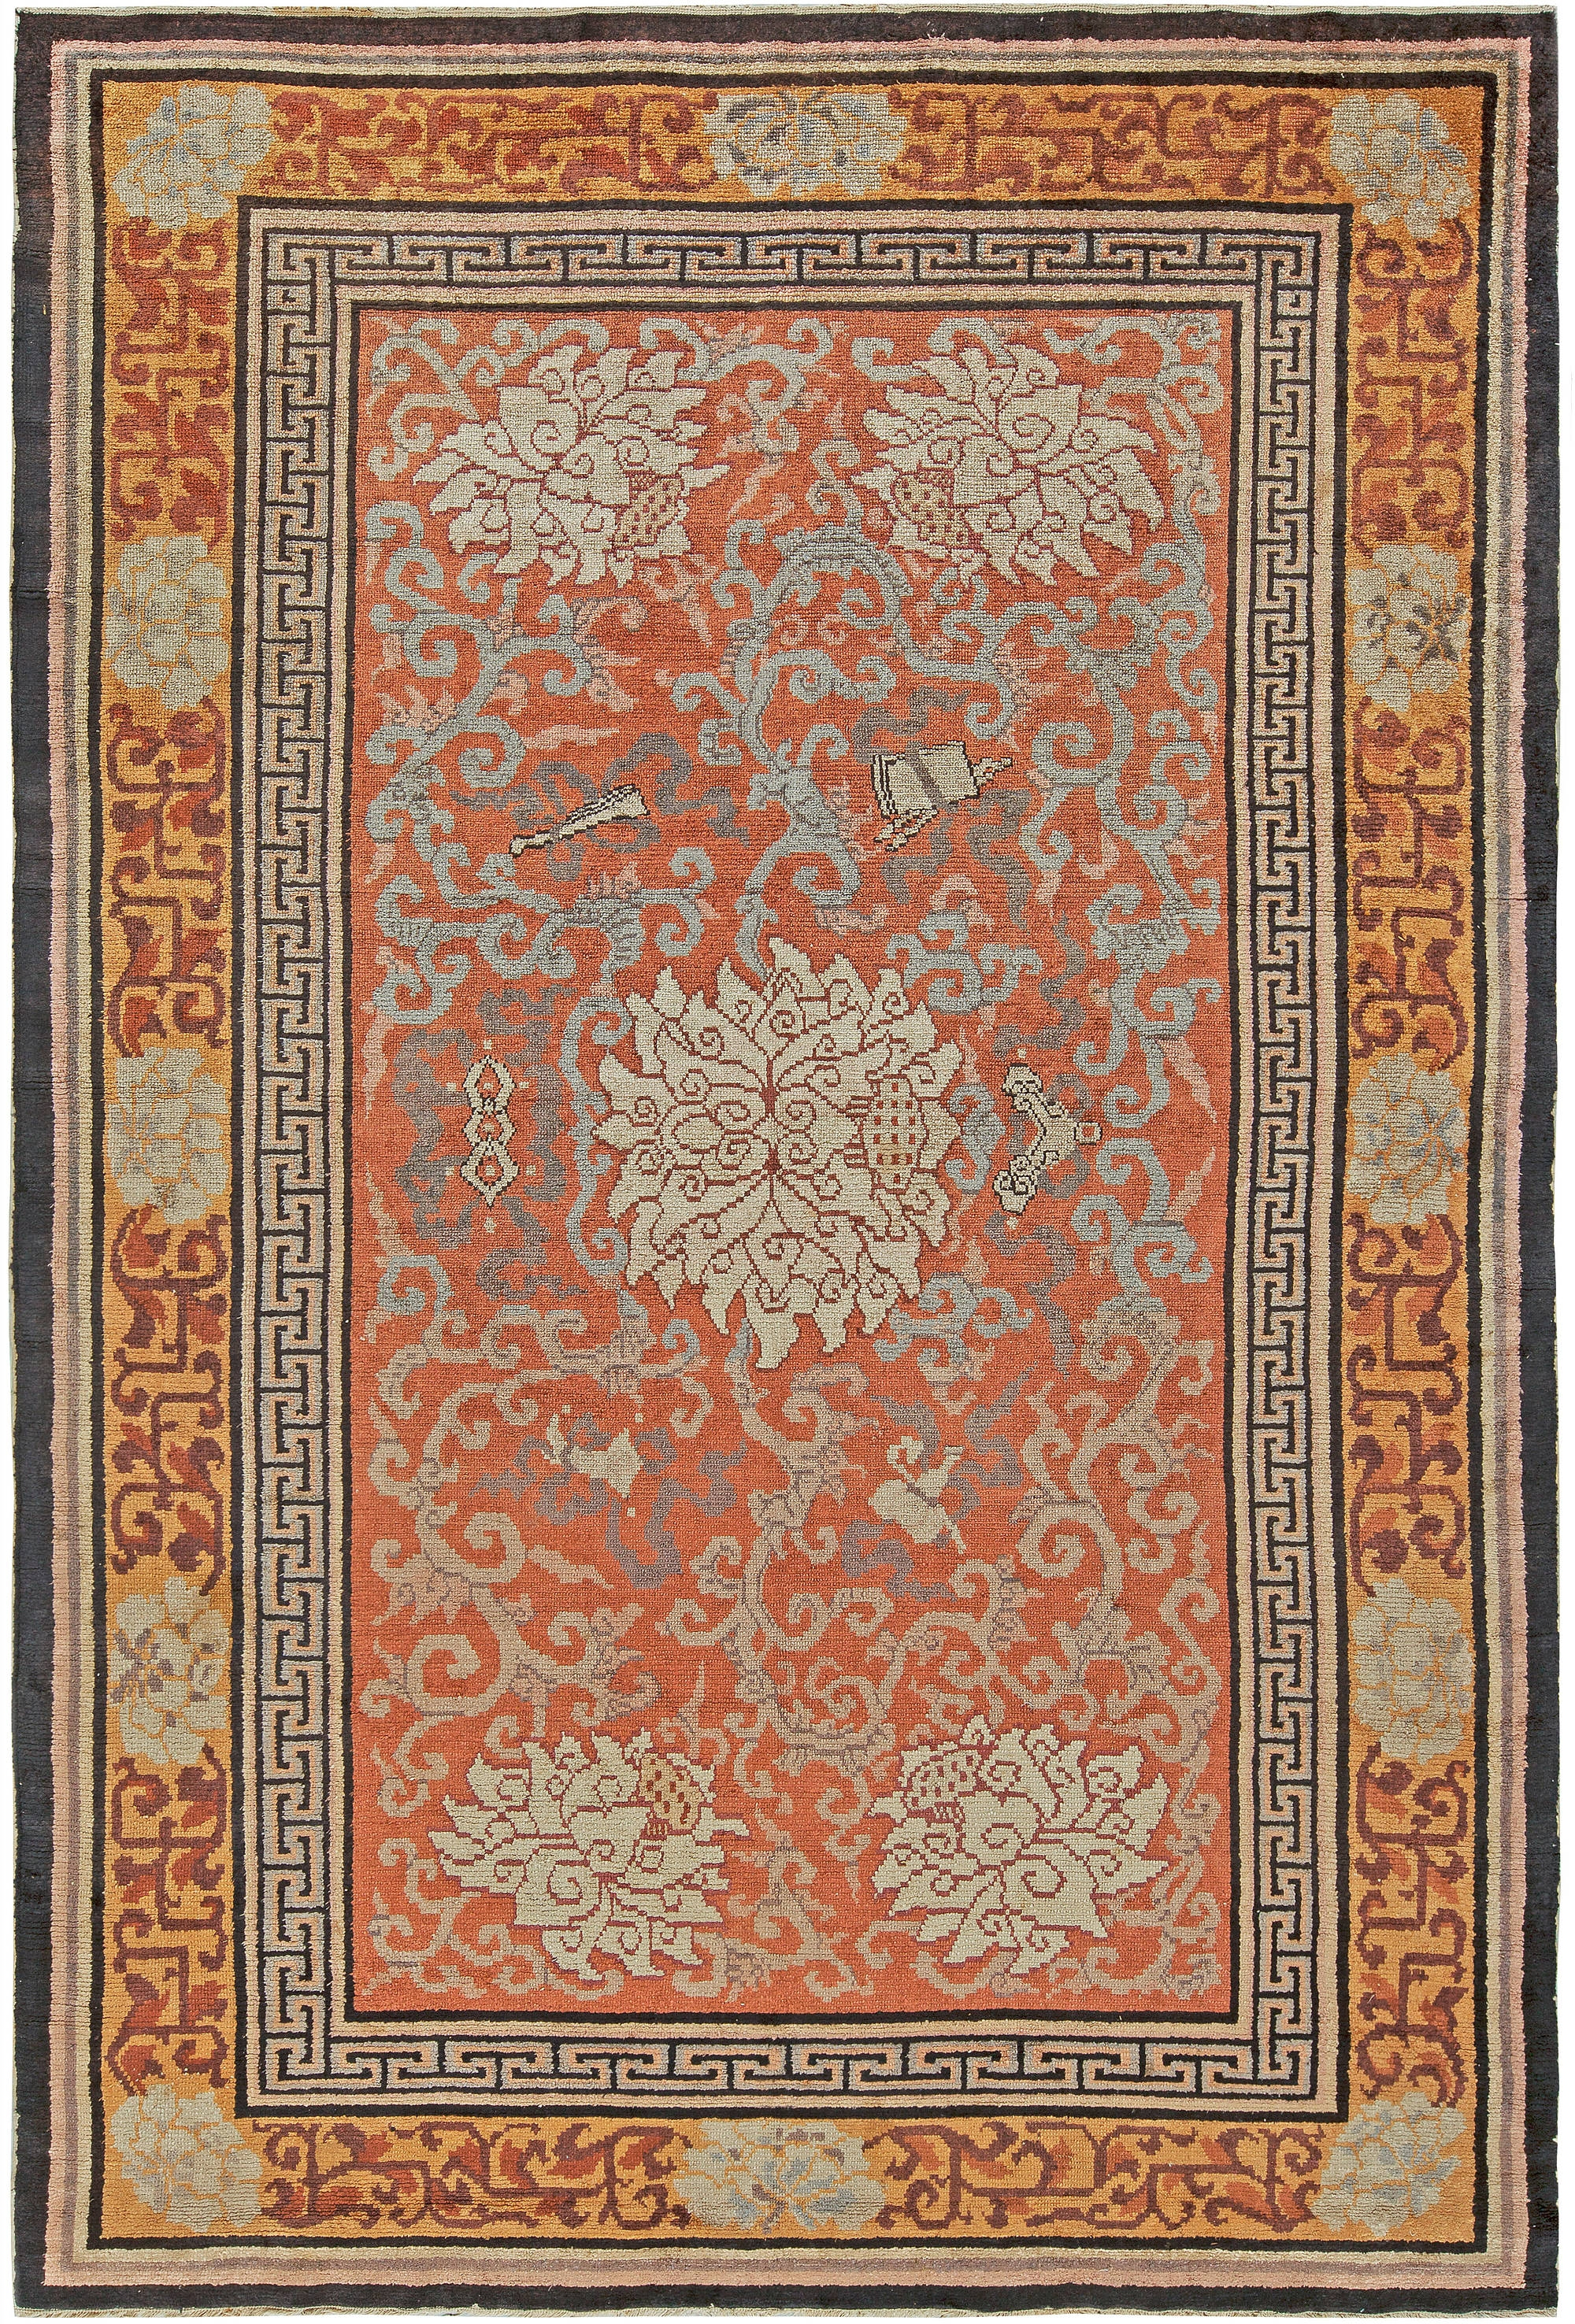 Chinese Rugs From Rug Collection Doris Leslie Blau Pertaining To Chinese Rugs (View 13 of 15)